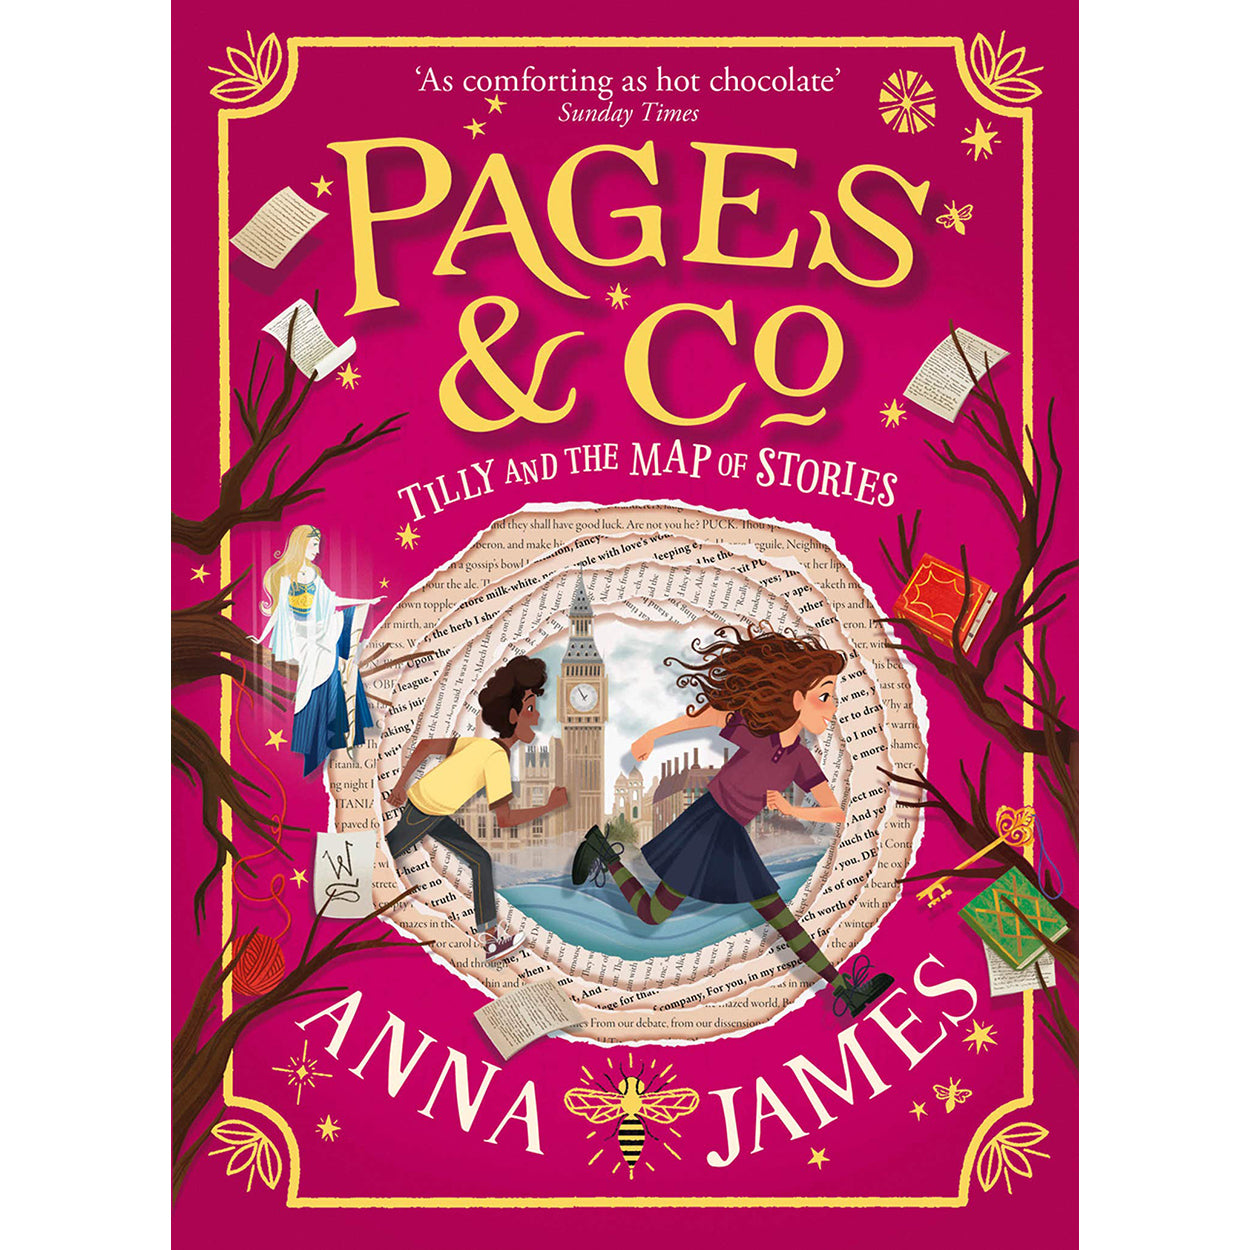 Cover of Pages & Co.: Tilly and the Map of Stories by Anna James